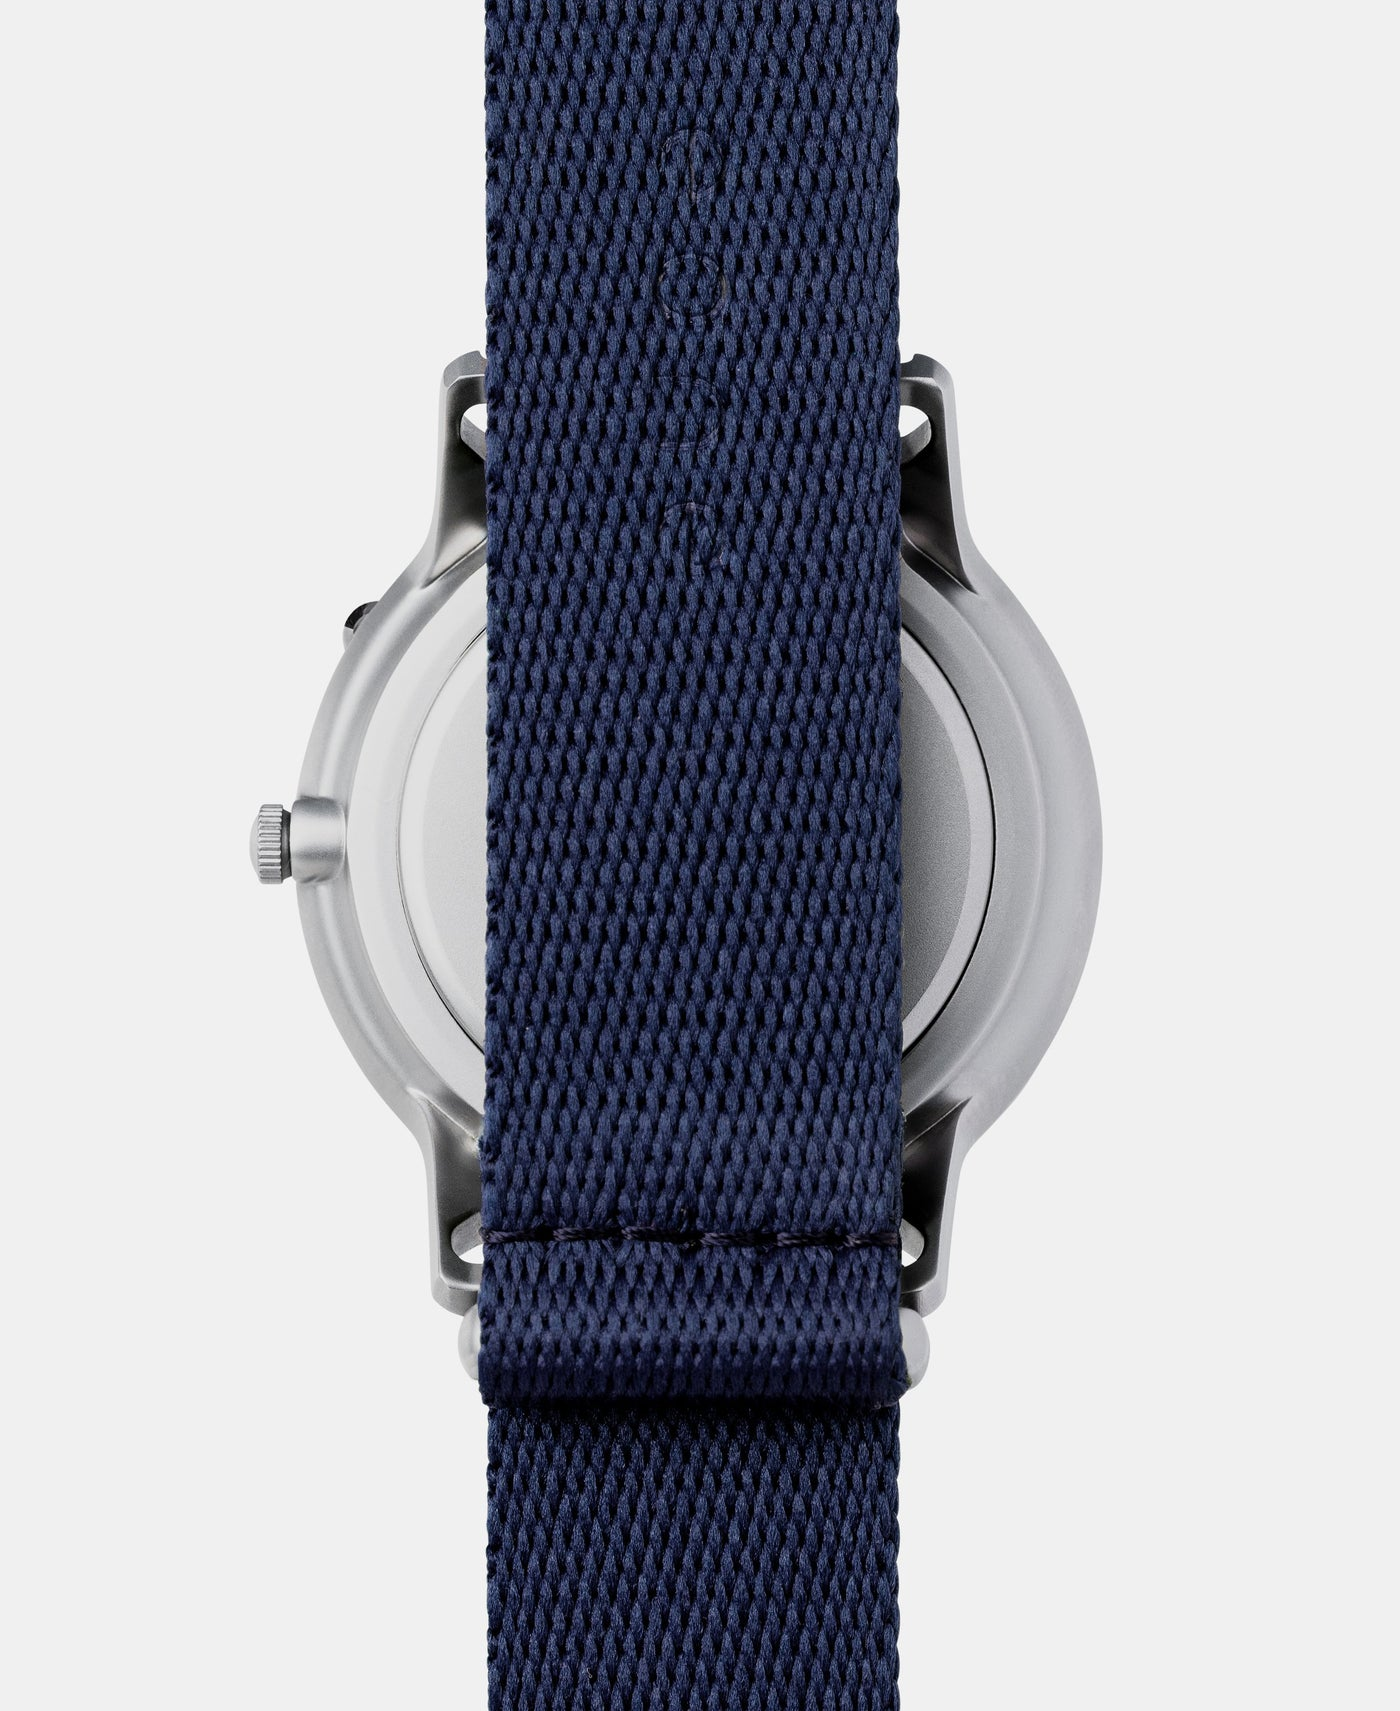 A photo of the back of the watch.